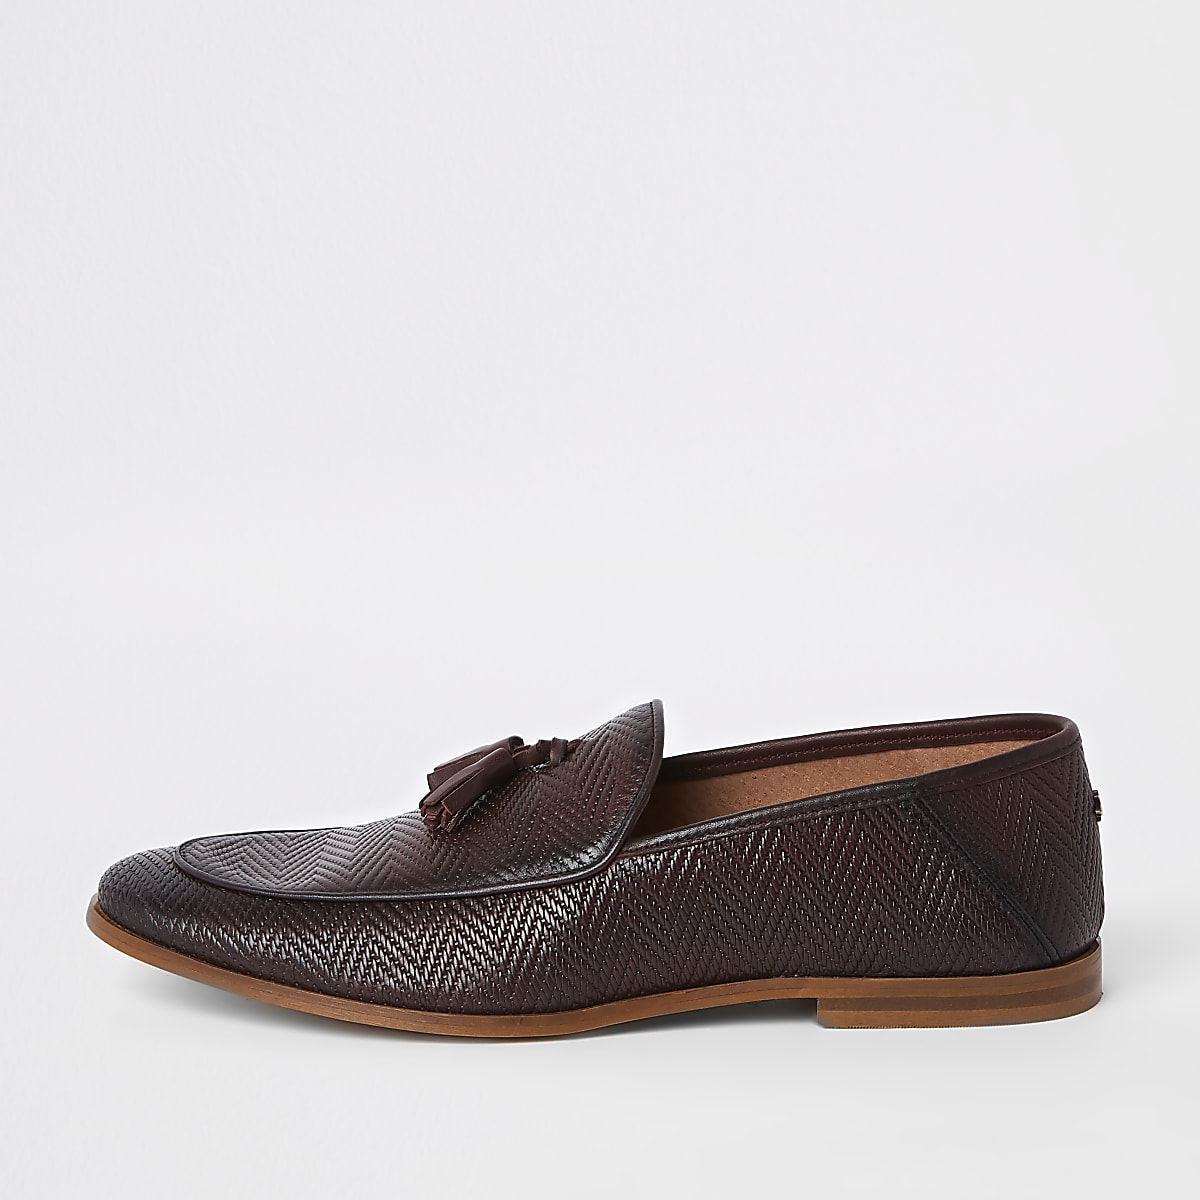 Loafer in Bordeaux aus Leder